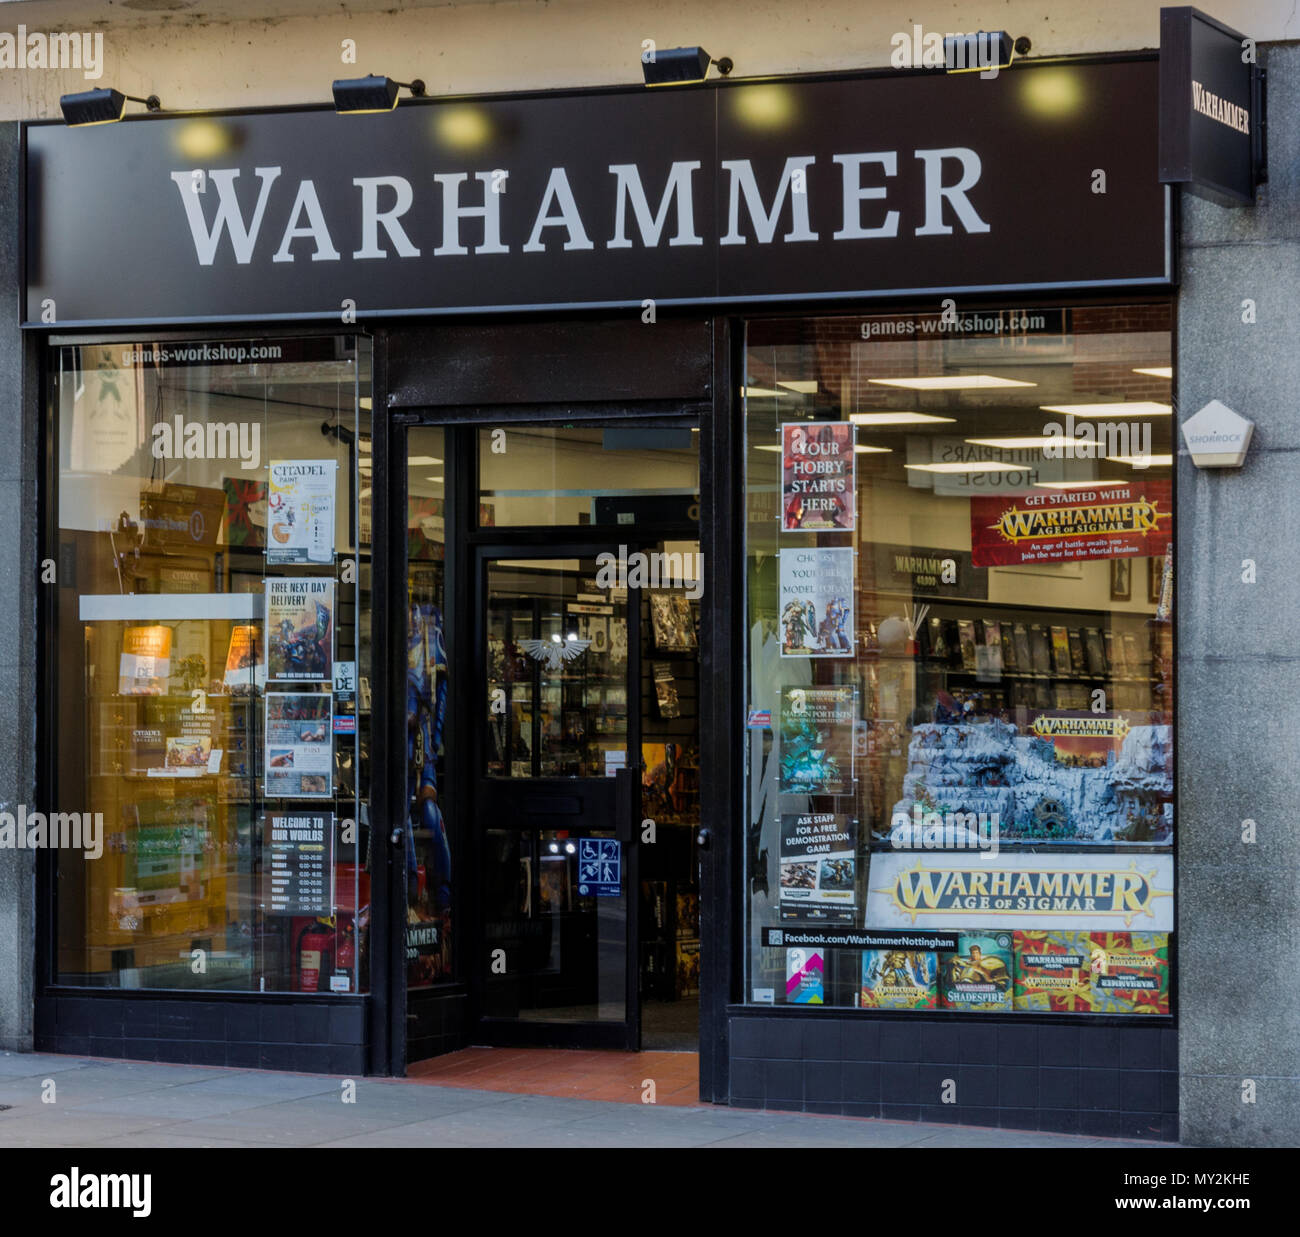 Games Workshop Games Workshop Stock Photos And Games Workshop Stock Images